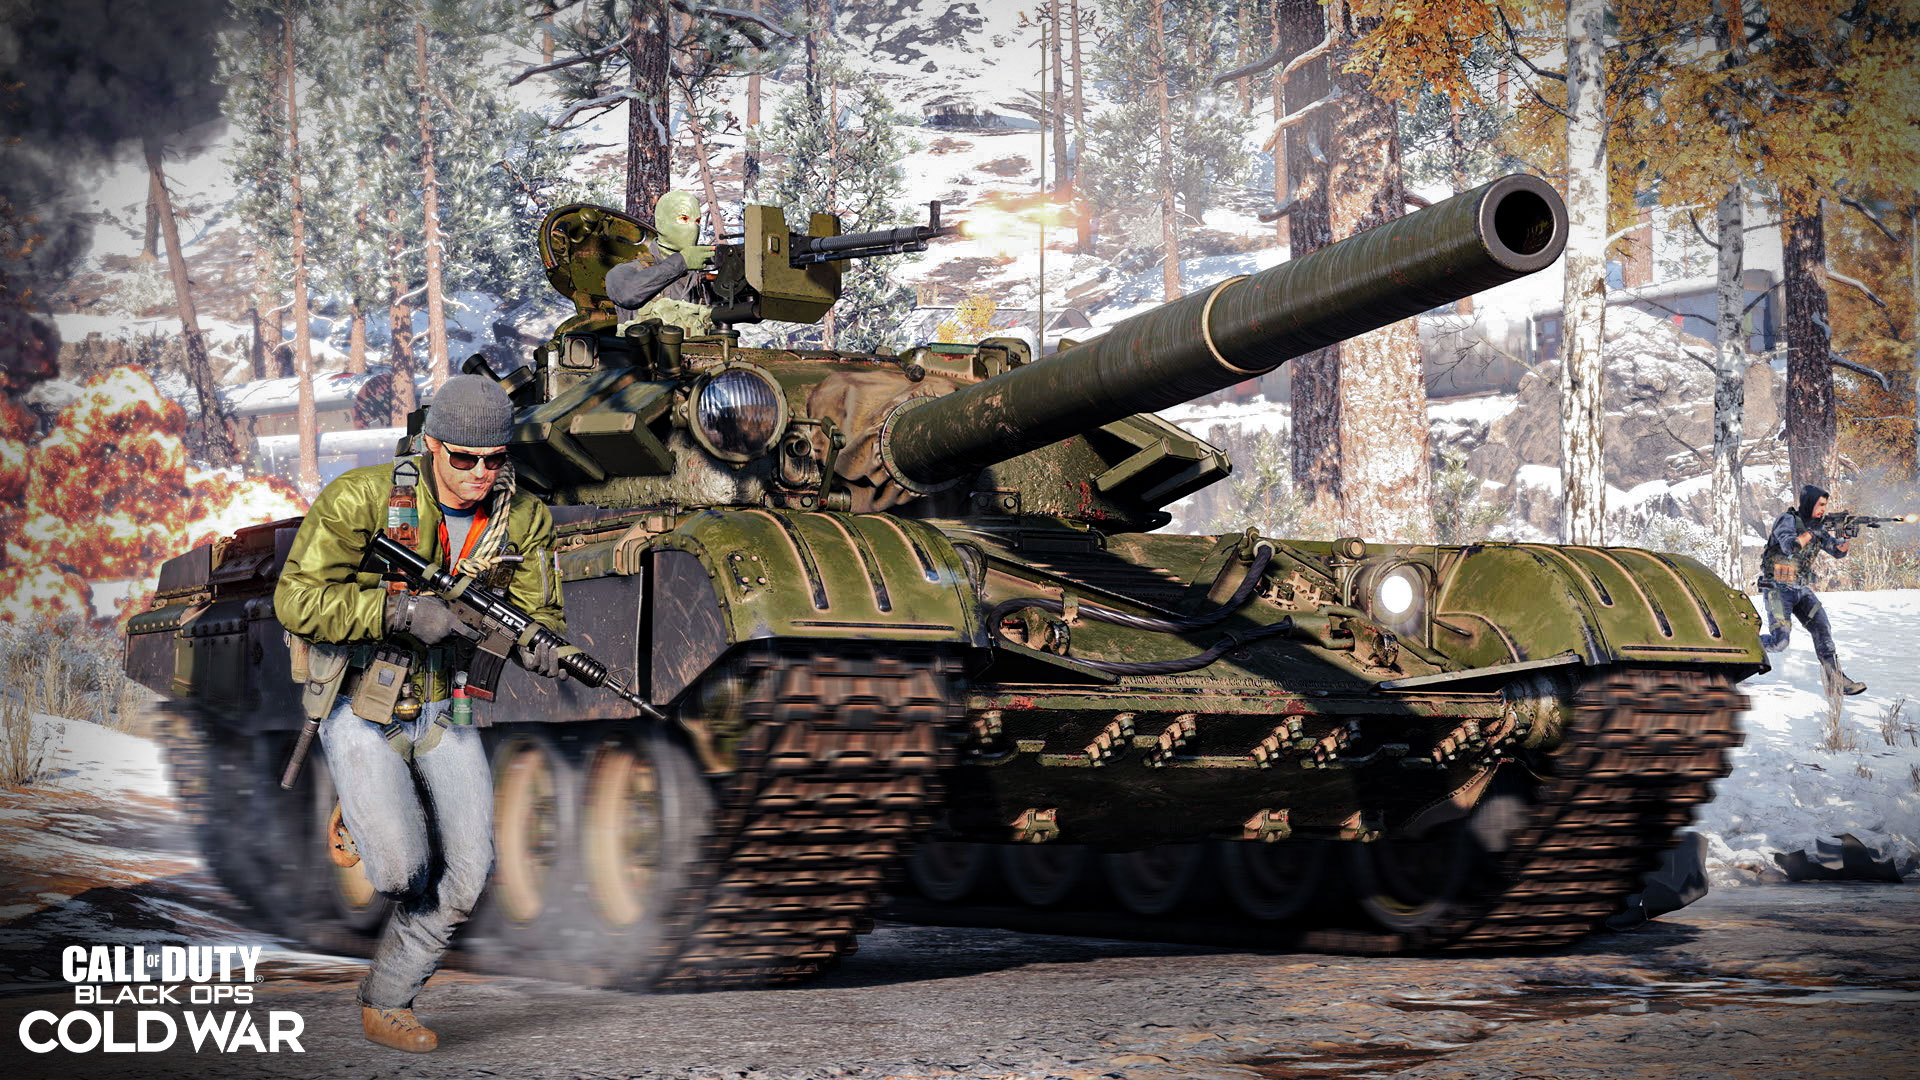 Call of Duty: Black Ops Cold War vehicles will have shooting while driving